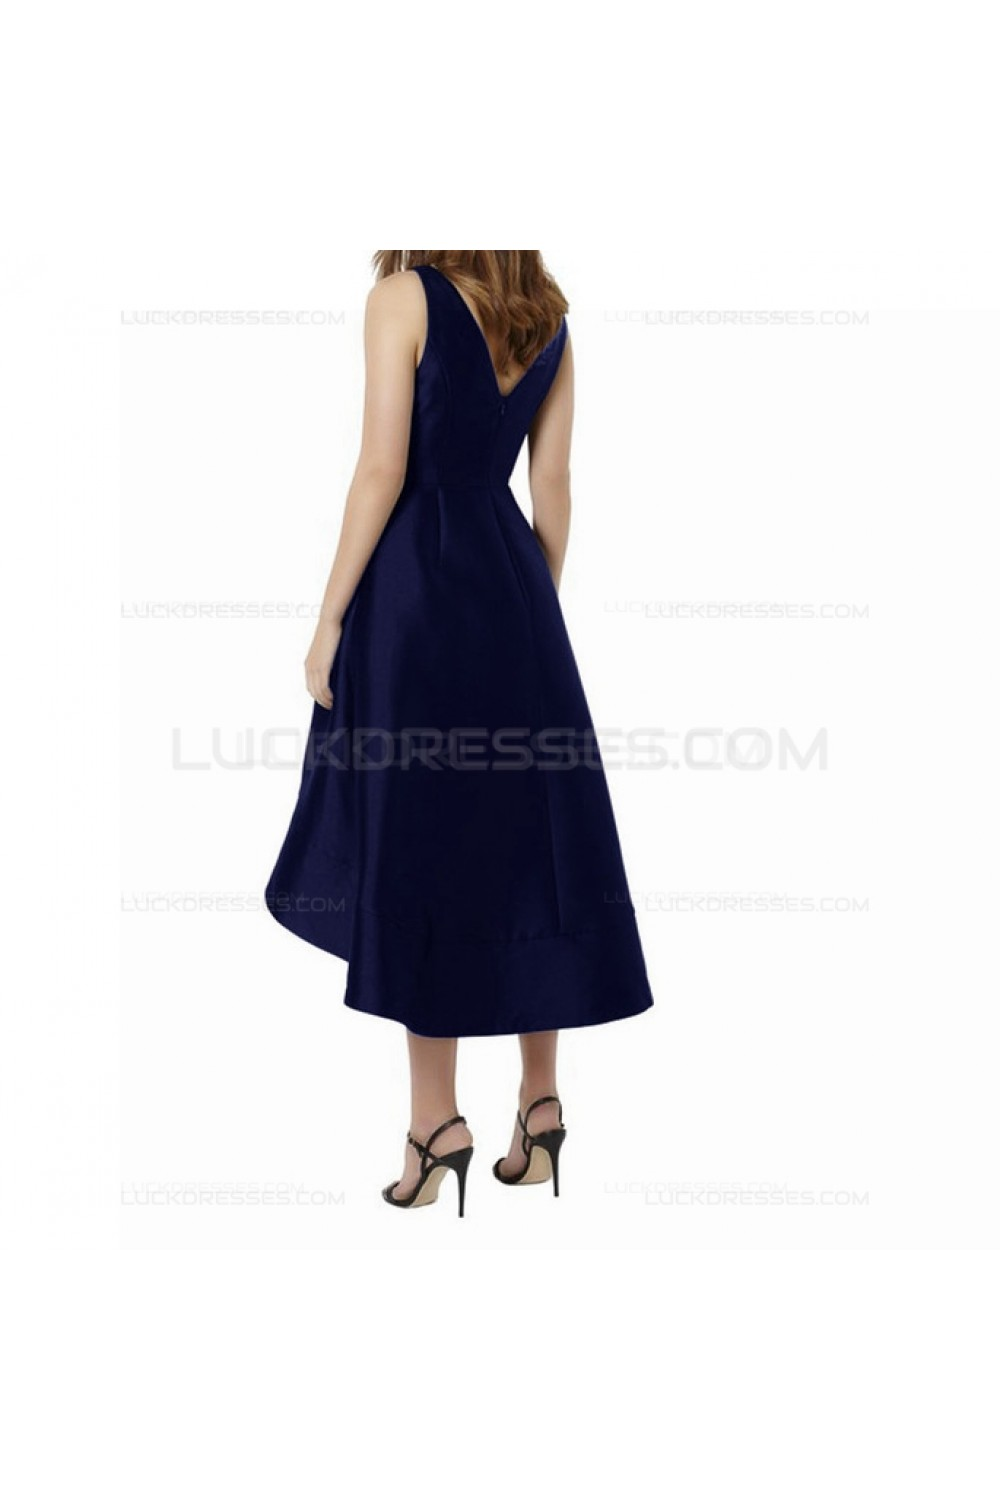 High Low V Neck Navy Wedding Guest Dresses Bridesmaid Dresses 3010231